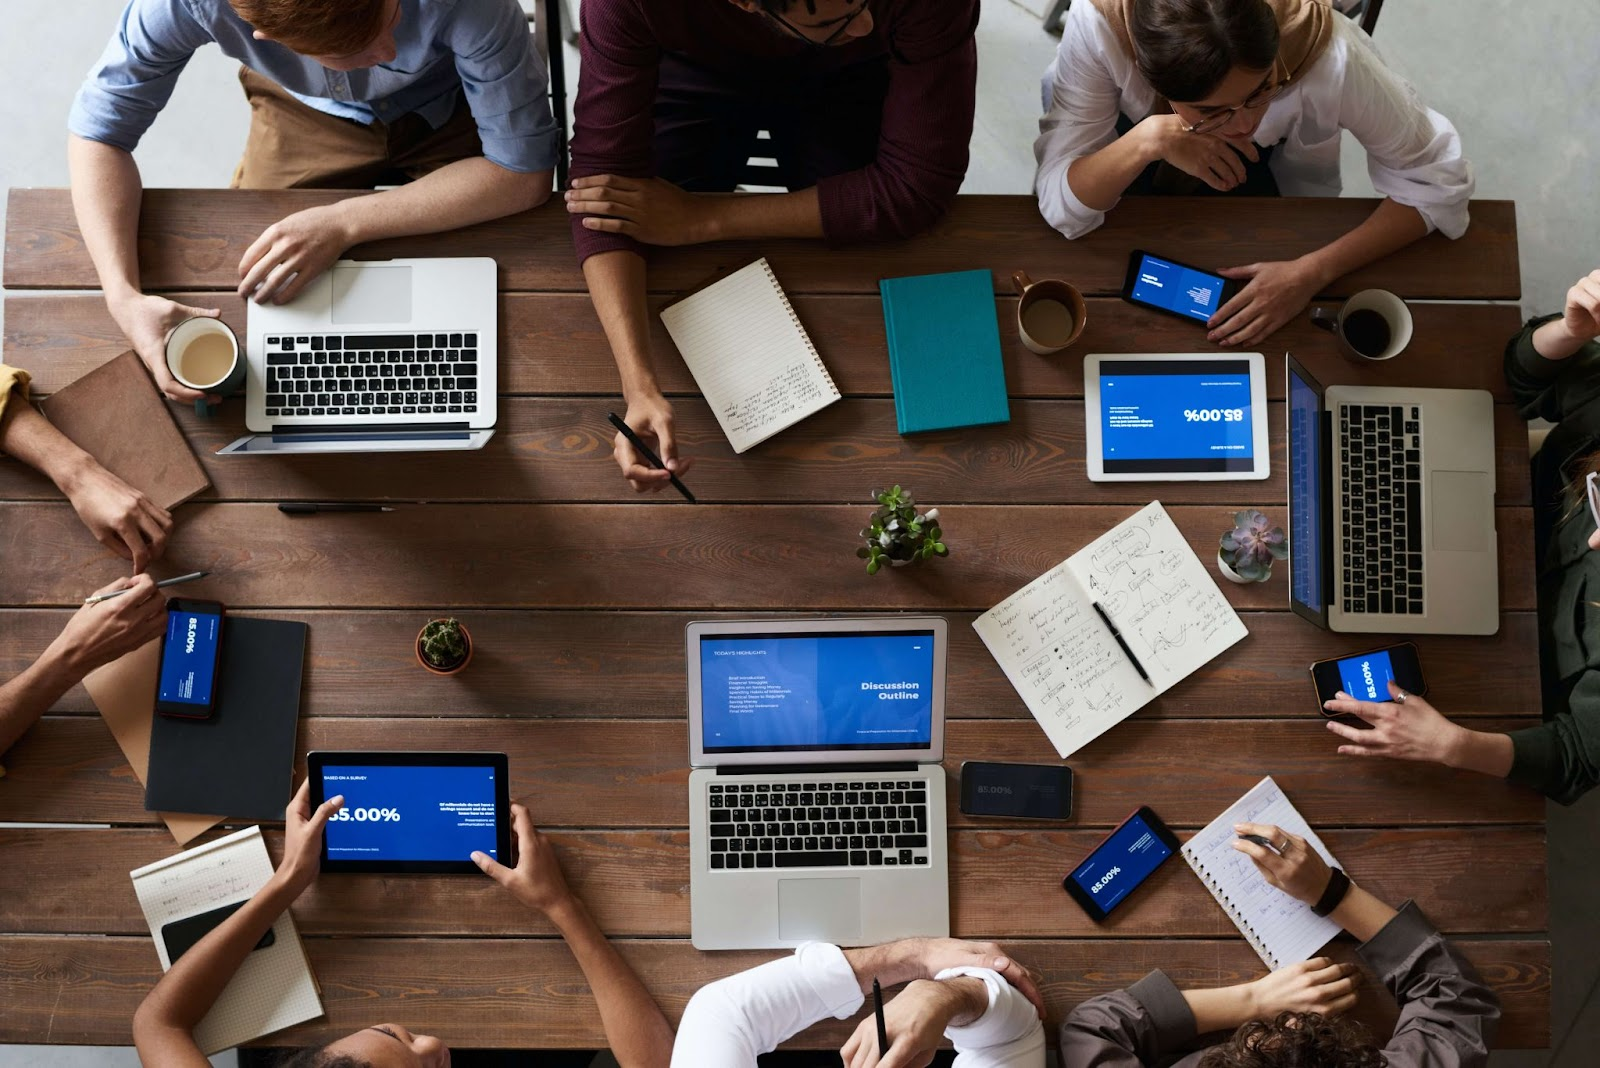 Communication in the workplace via laptops and tablets